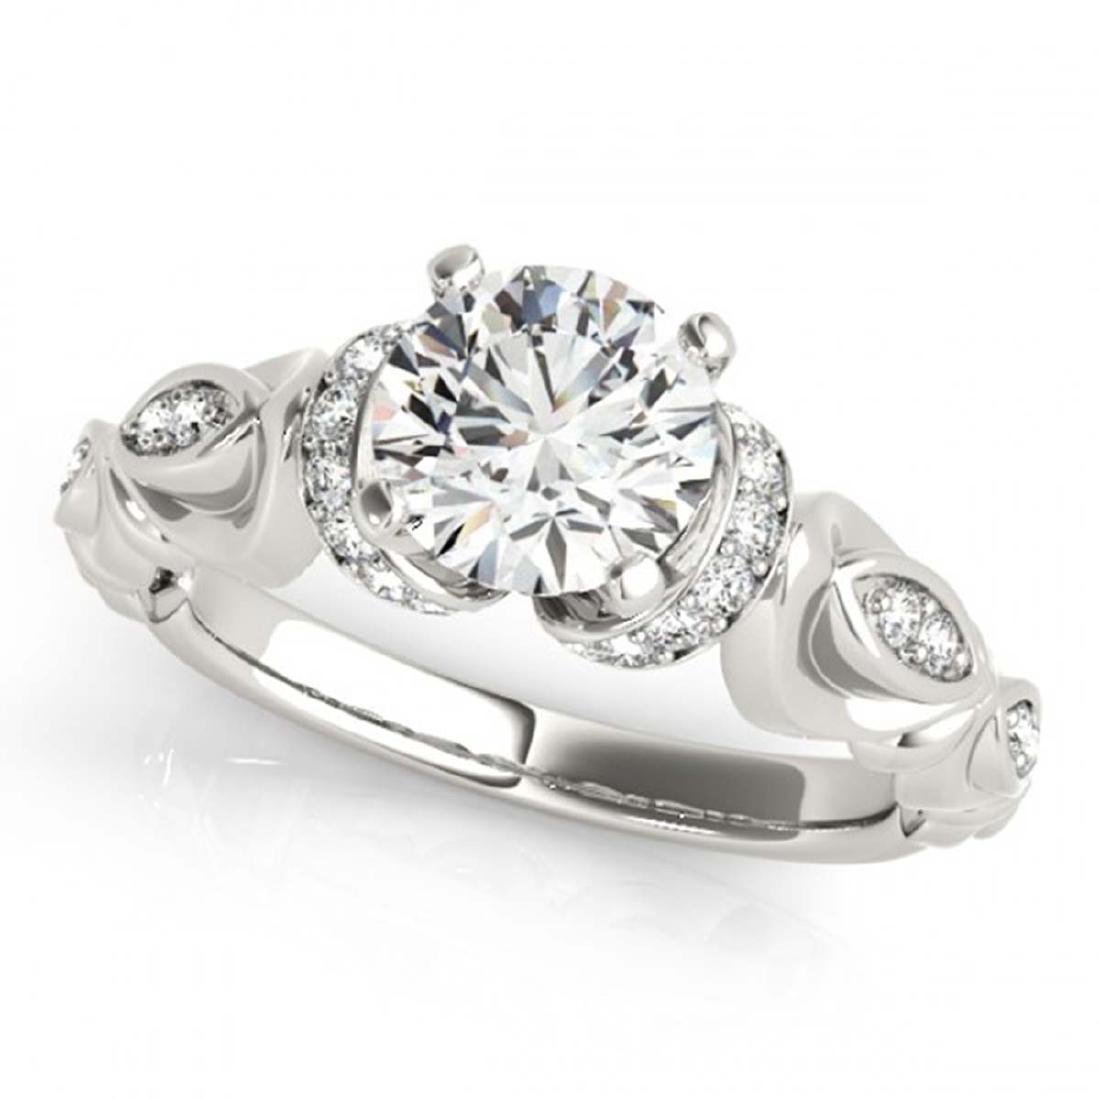 0.95 ctw VS/SI Diamond Ring 18K White Gold - REF-150H5M